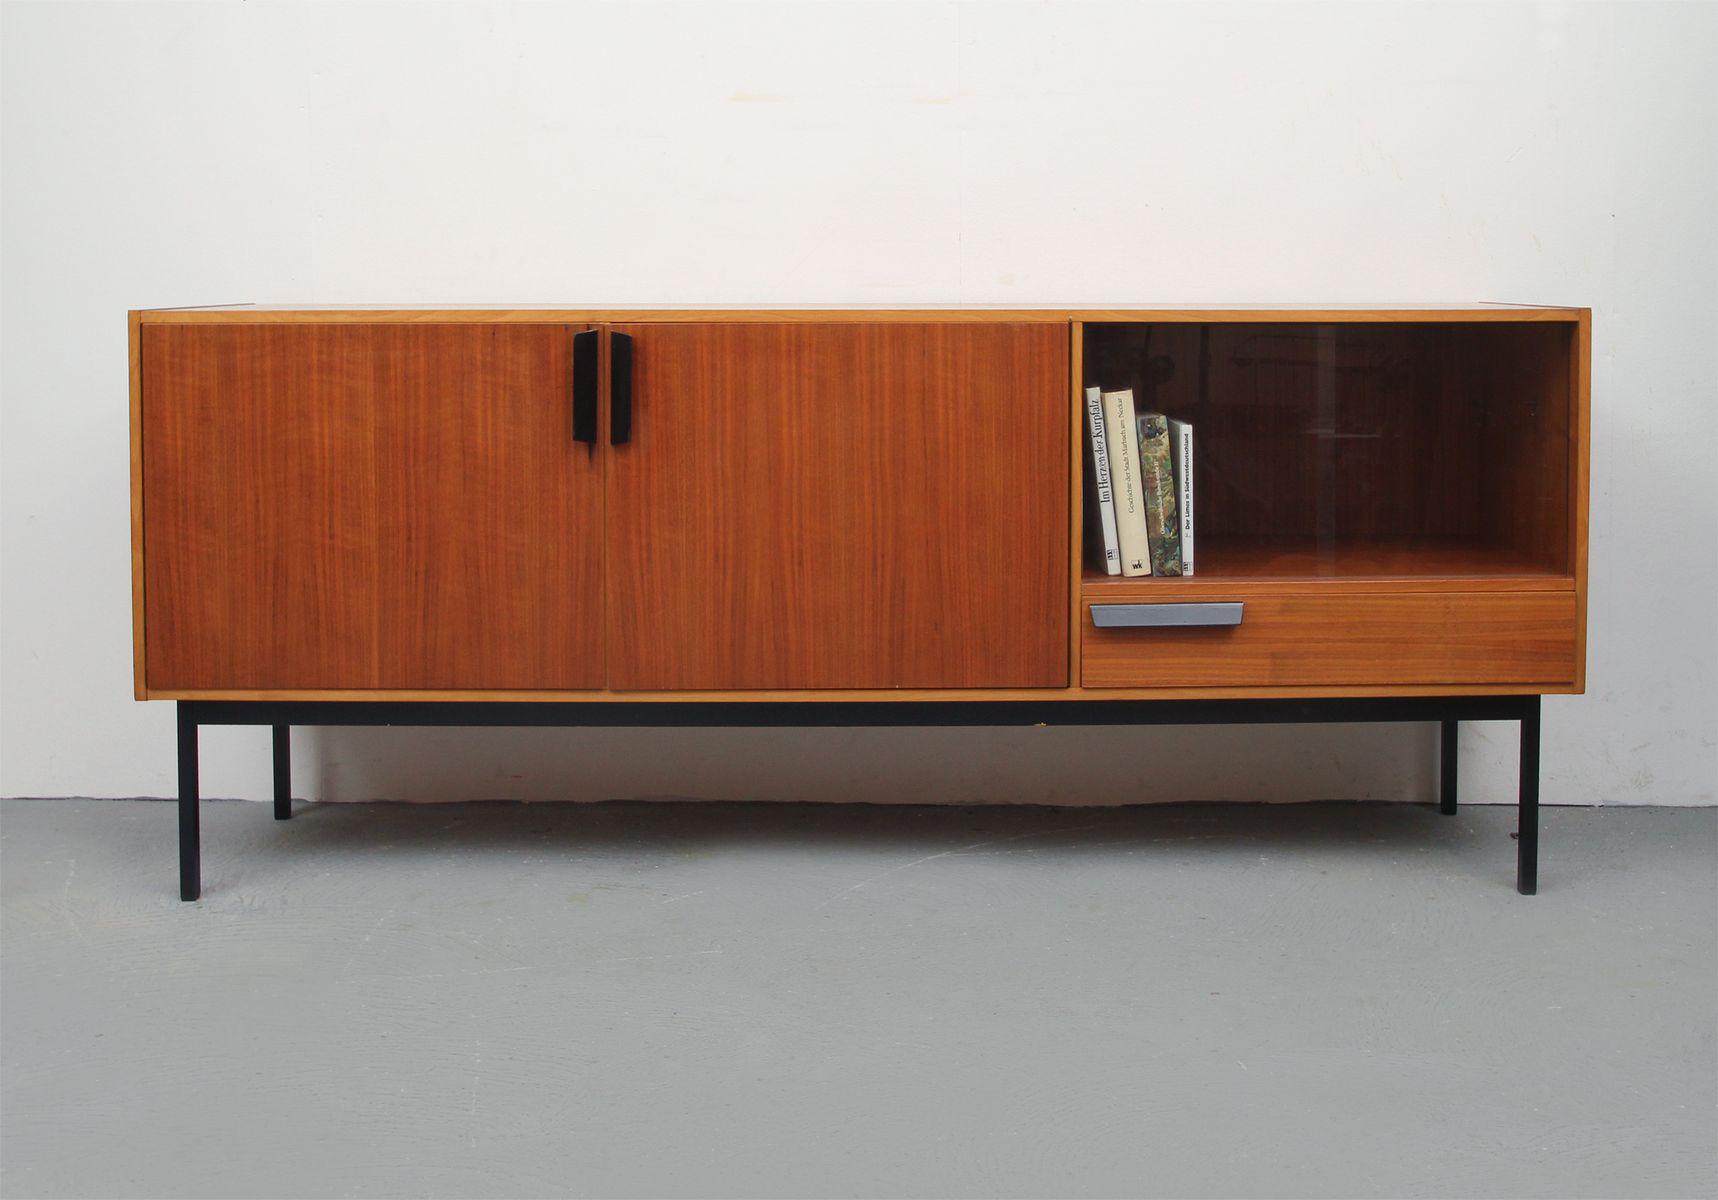 deutsches sideboard aus nussholz mit vitrine 1960er bei pamono kaufen. Black Bedroom Furniture Sets. Home Design Ideas